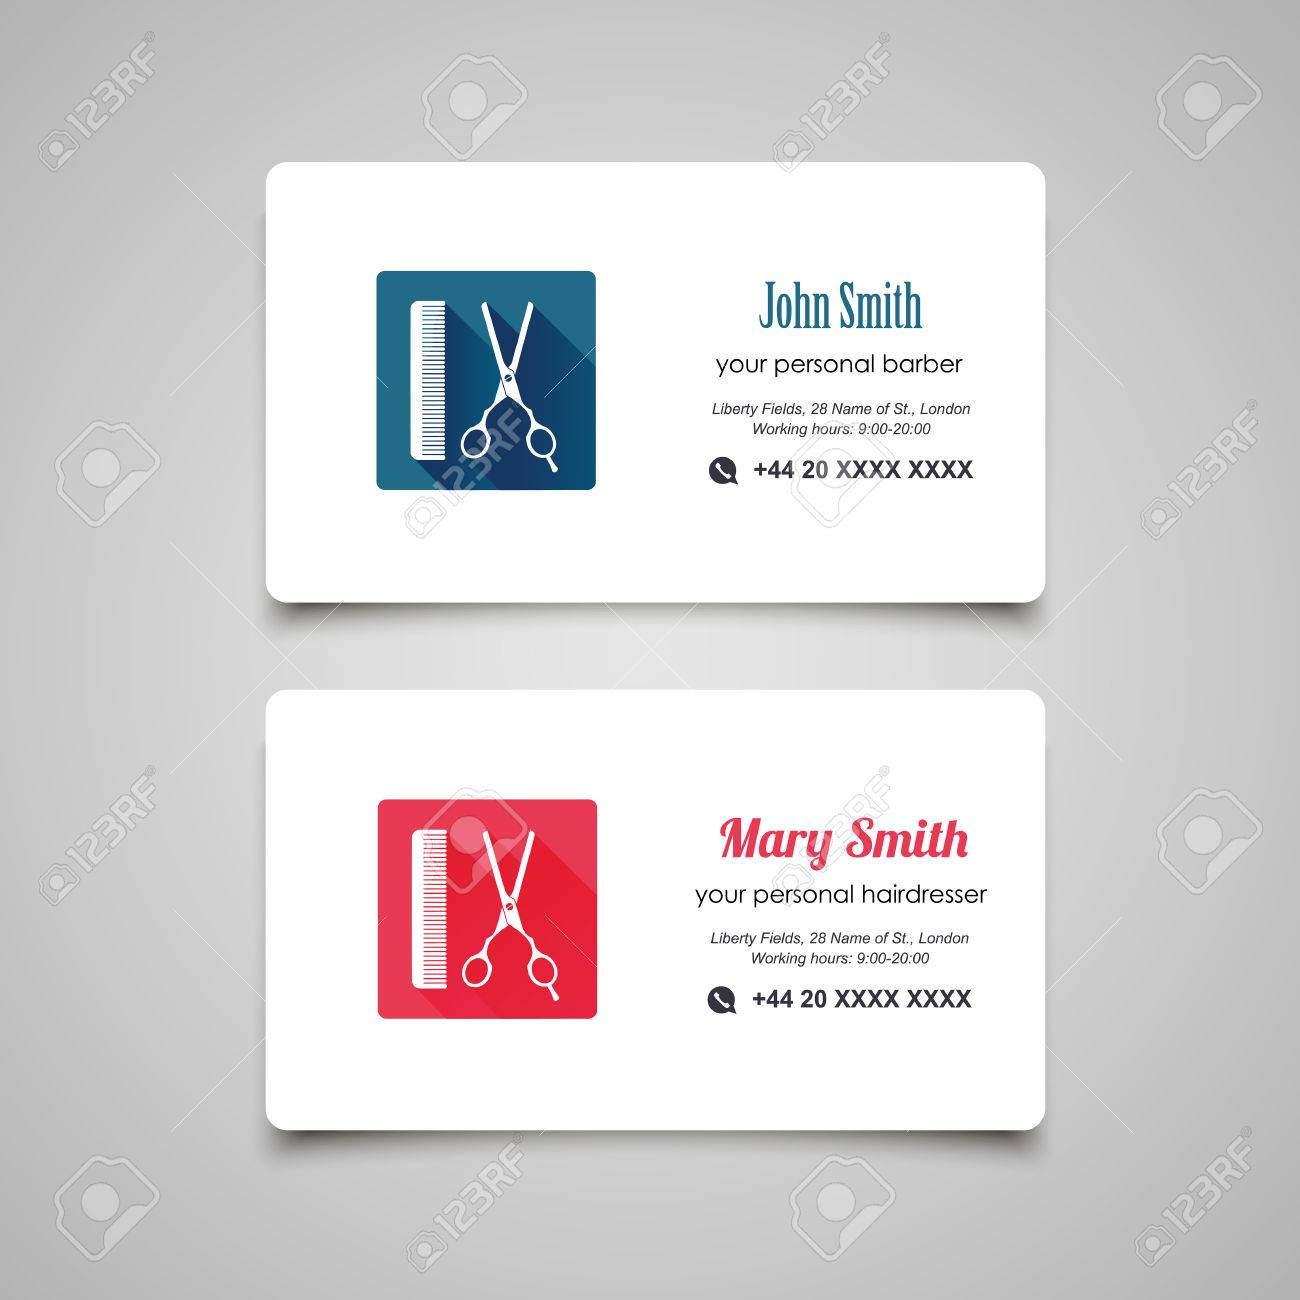 Hair salon barber shop business card design template royalty free hair salon barber shop business card design template stock vector 39315881 flashek Choice Image